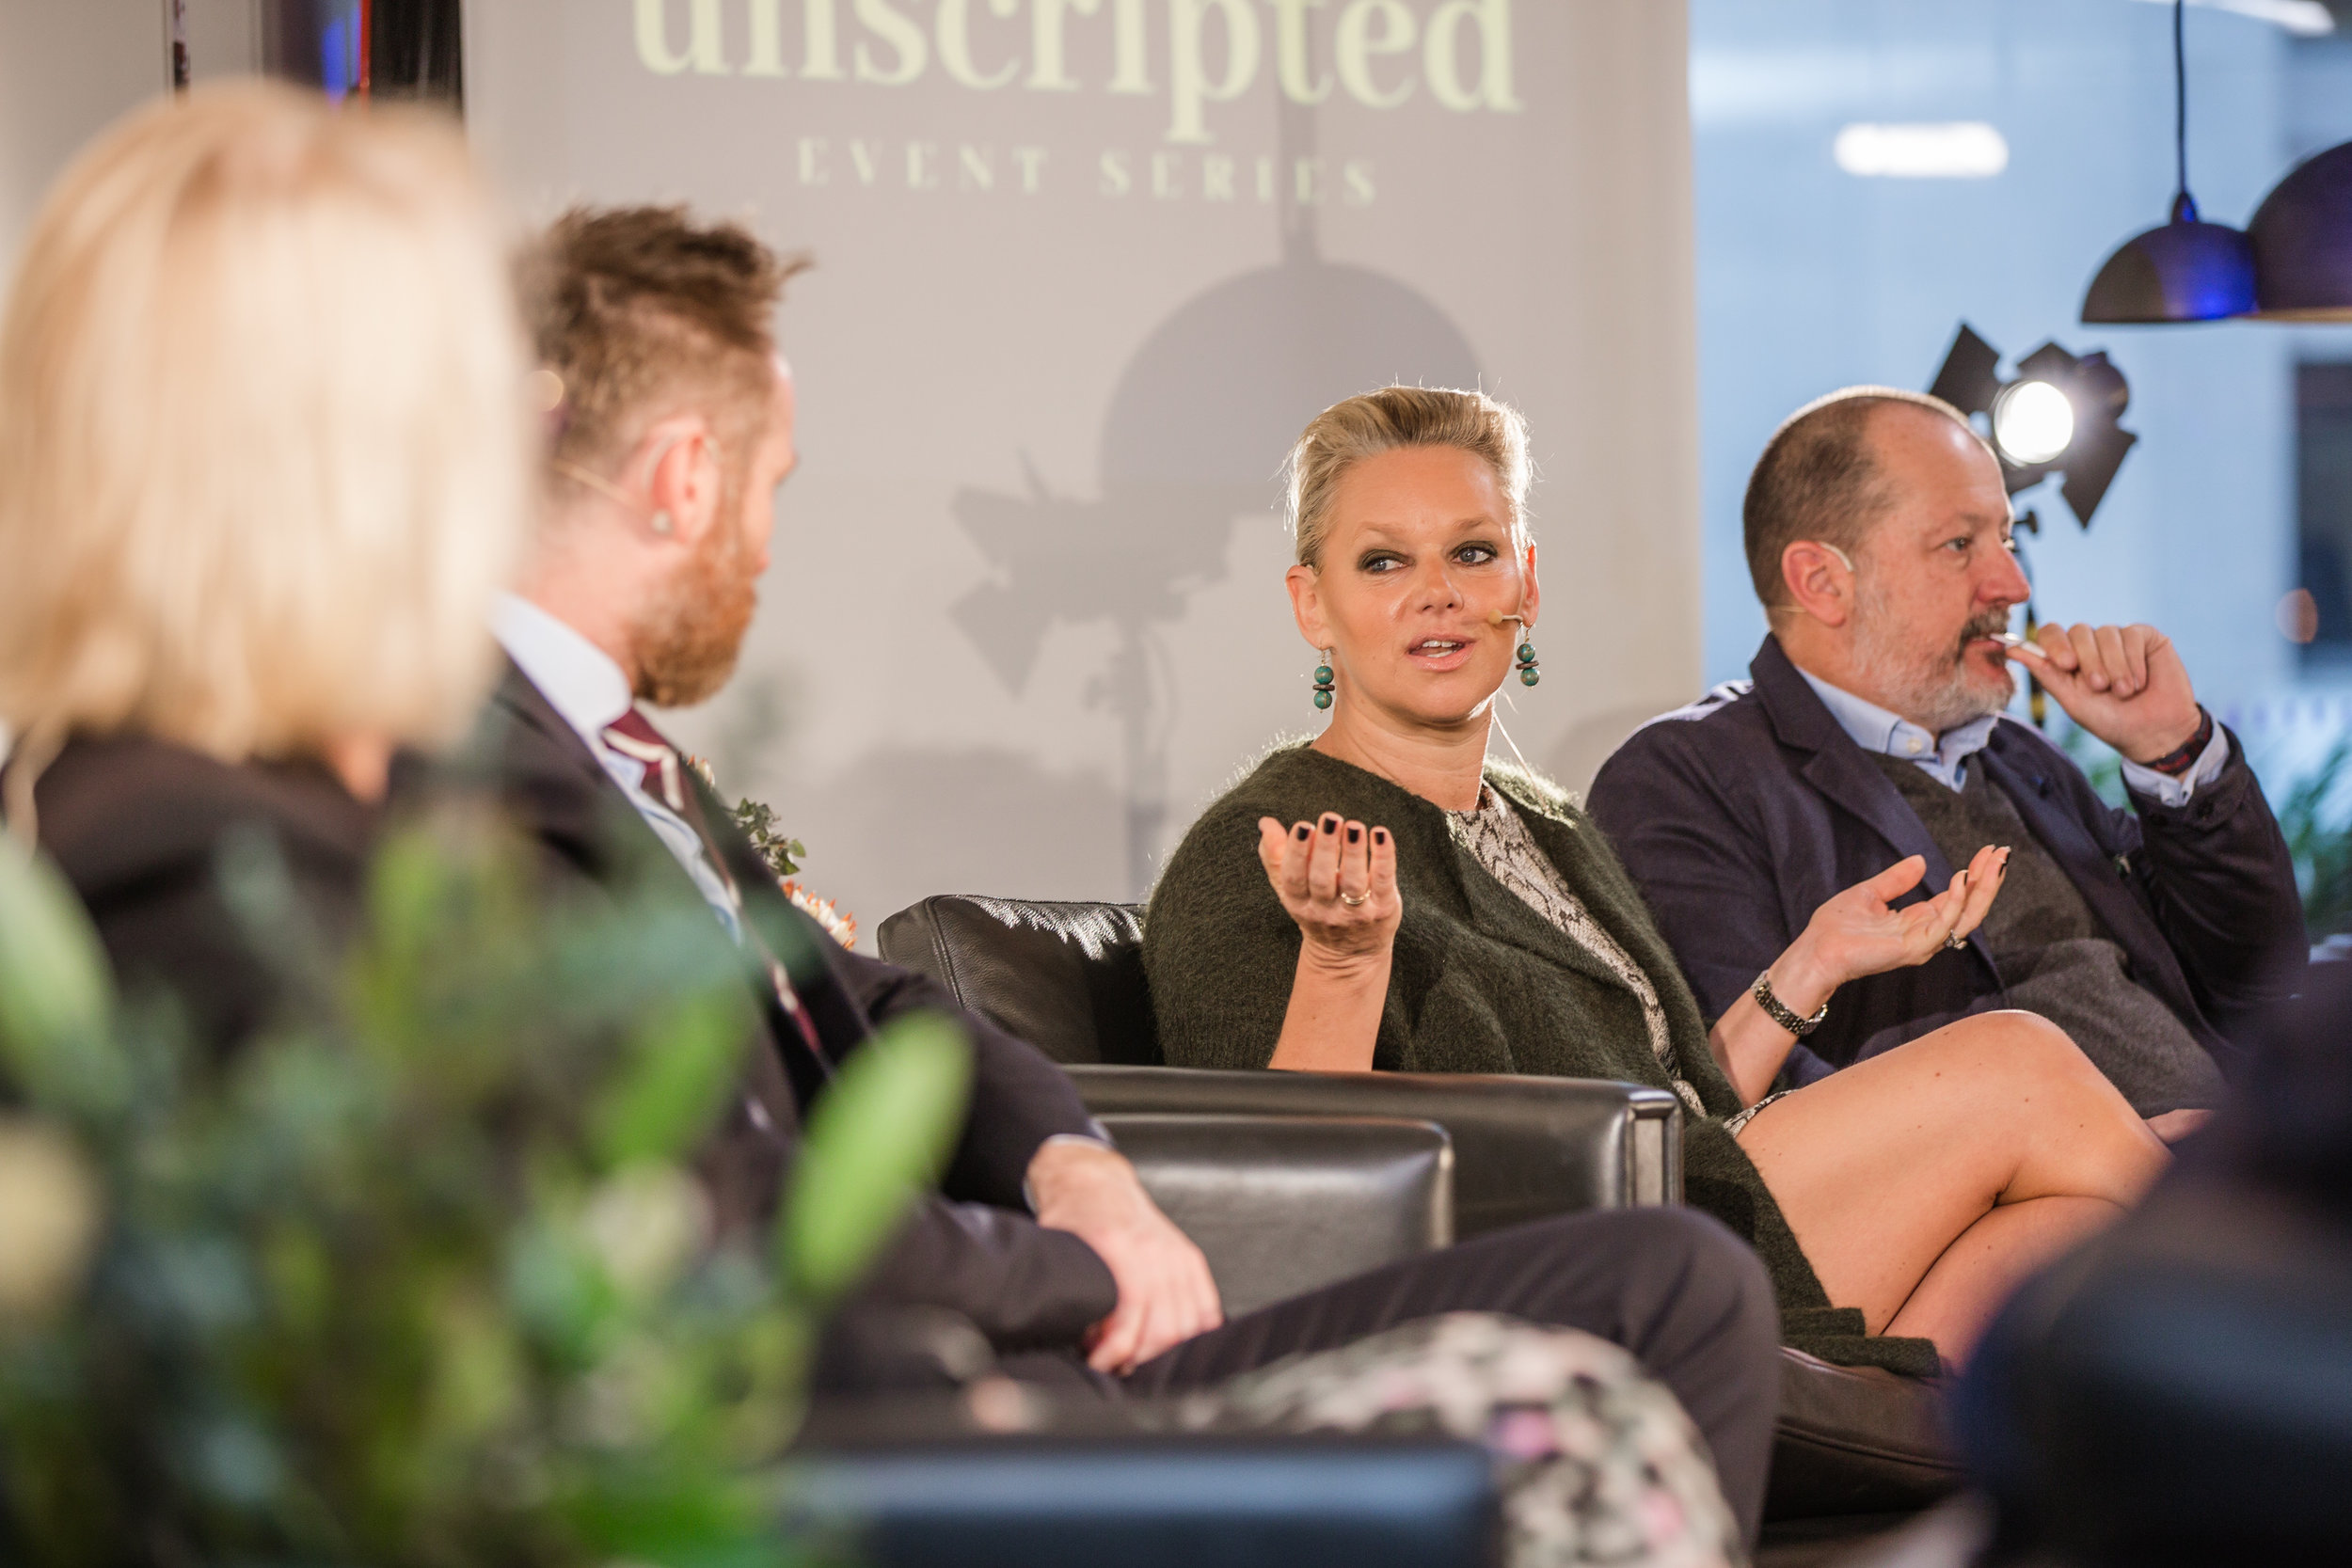 content-smith-unscripted-fireside-melbourne-capp-howcroft-HR49.jpg